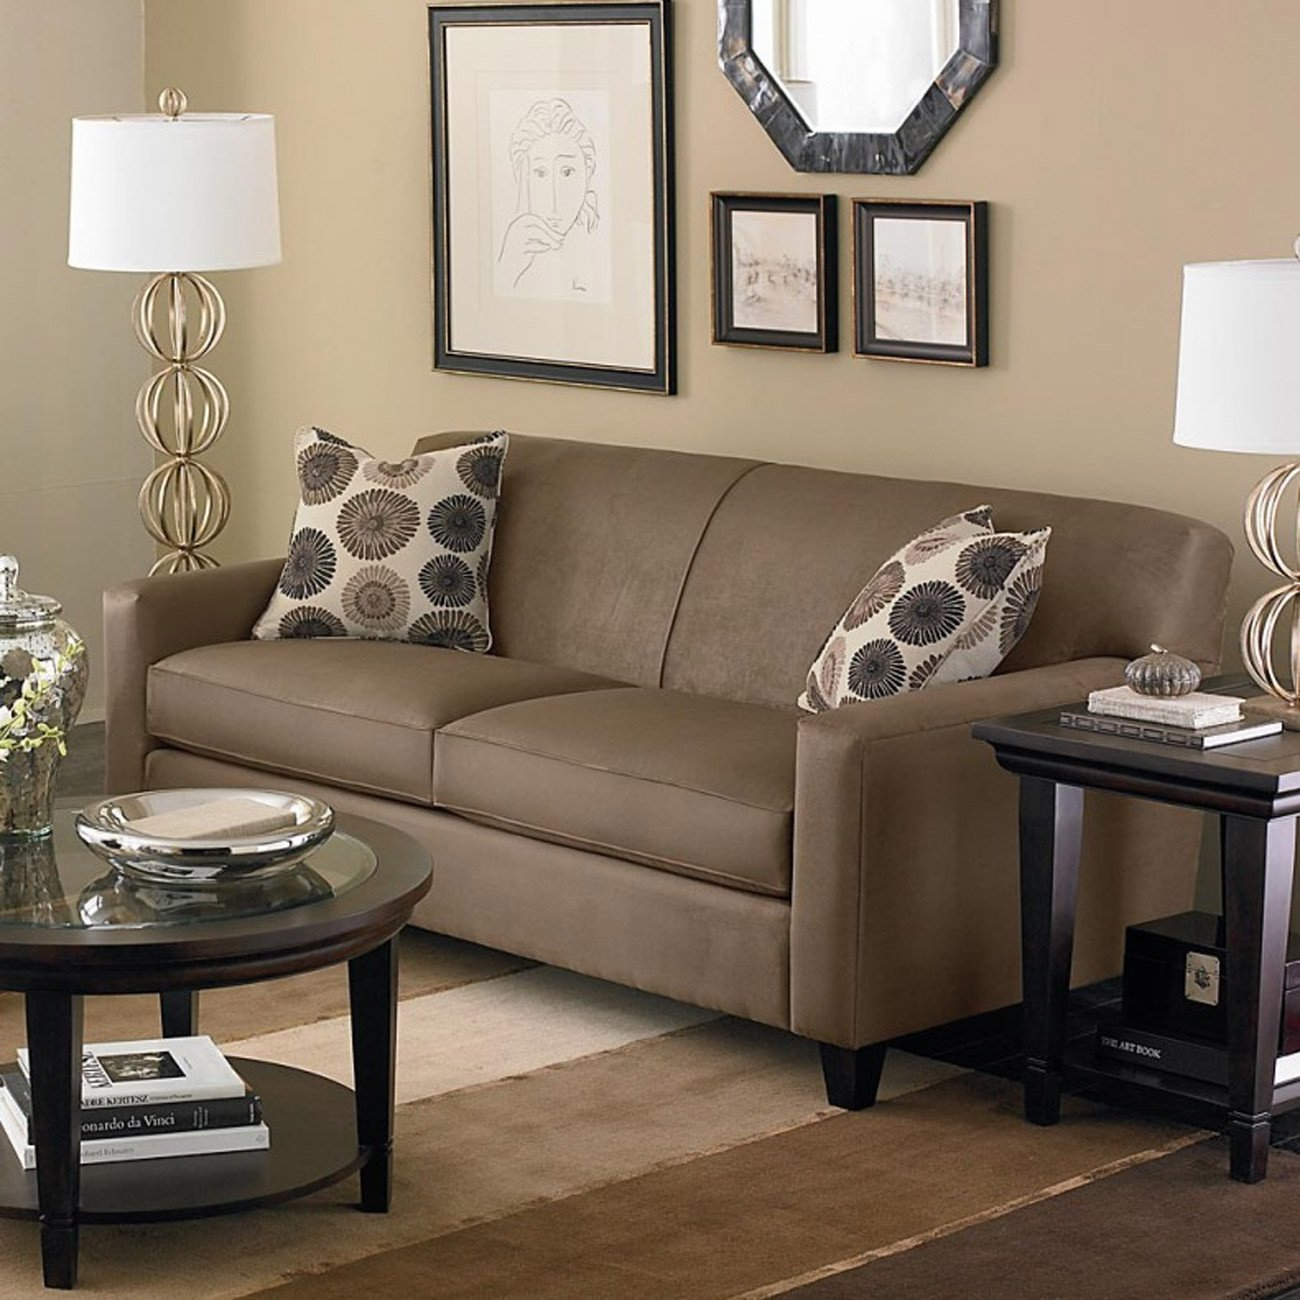 Living Room Furniture Ideas Find Suitable Living Room Furniture with Your Style